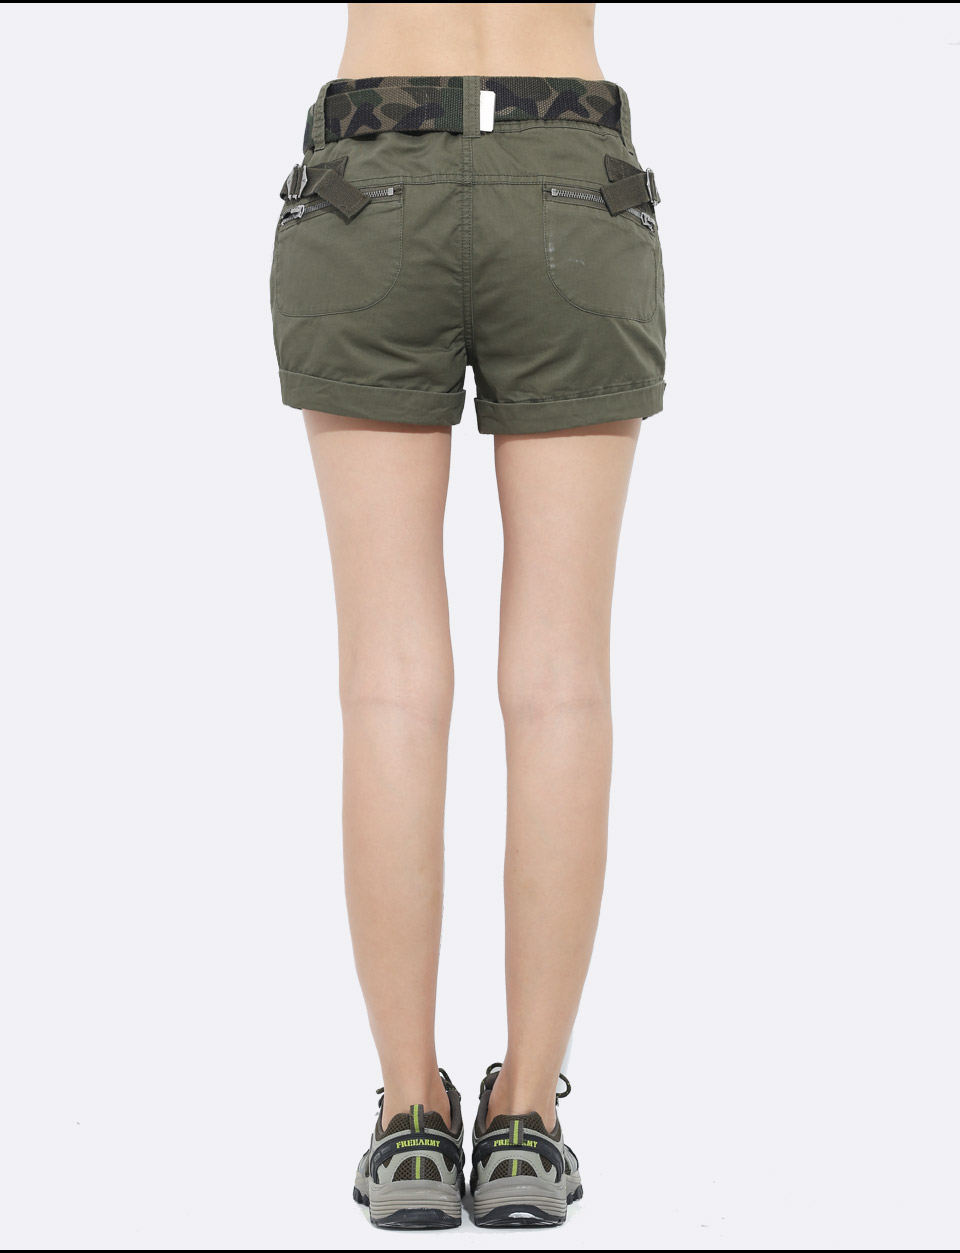 Brand Laides Shorts Women Casual Shorts Loose Pockets Zipper Military Army Green Large Summer Ladies Shorts Outdoors Plus Size 11